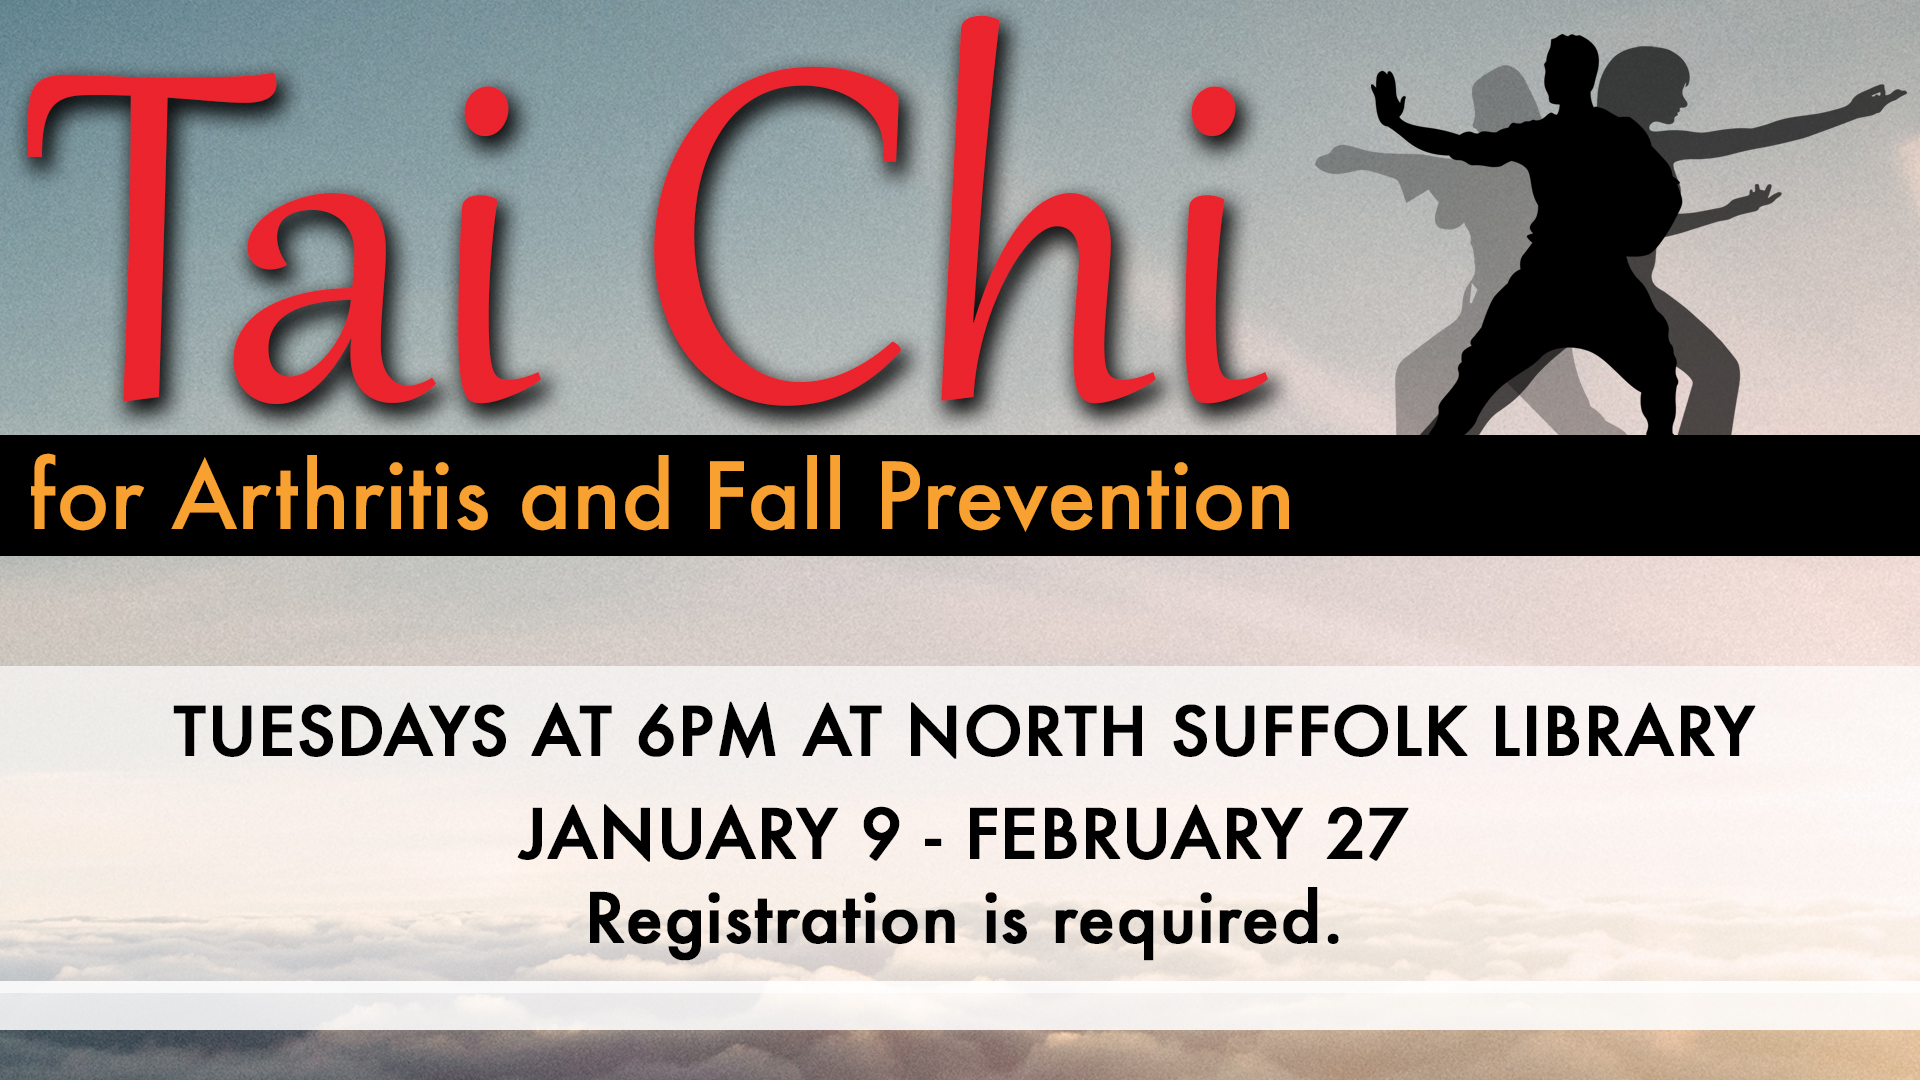 Tai Chi for Arthritis and Fall Prevention